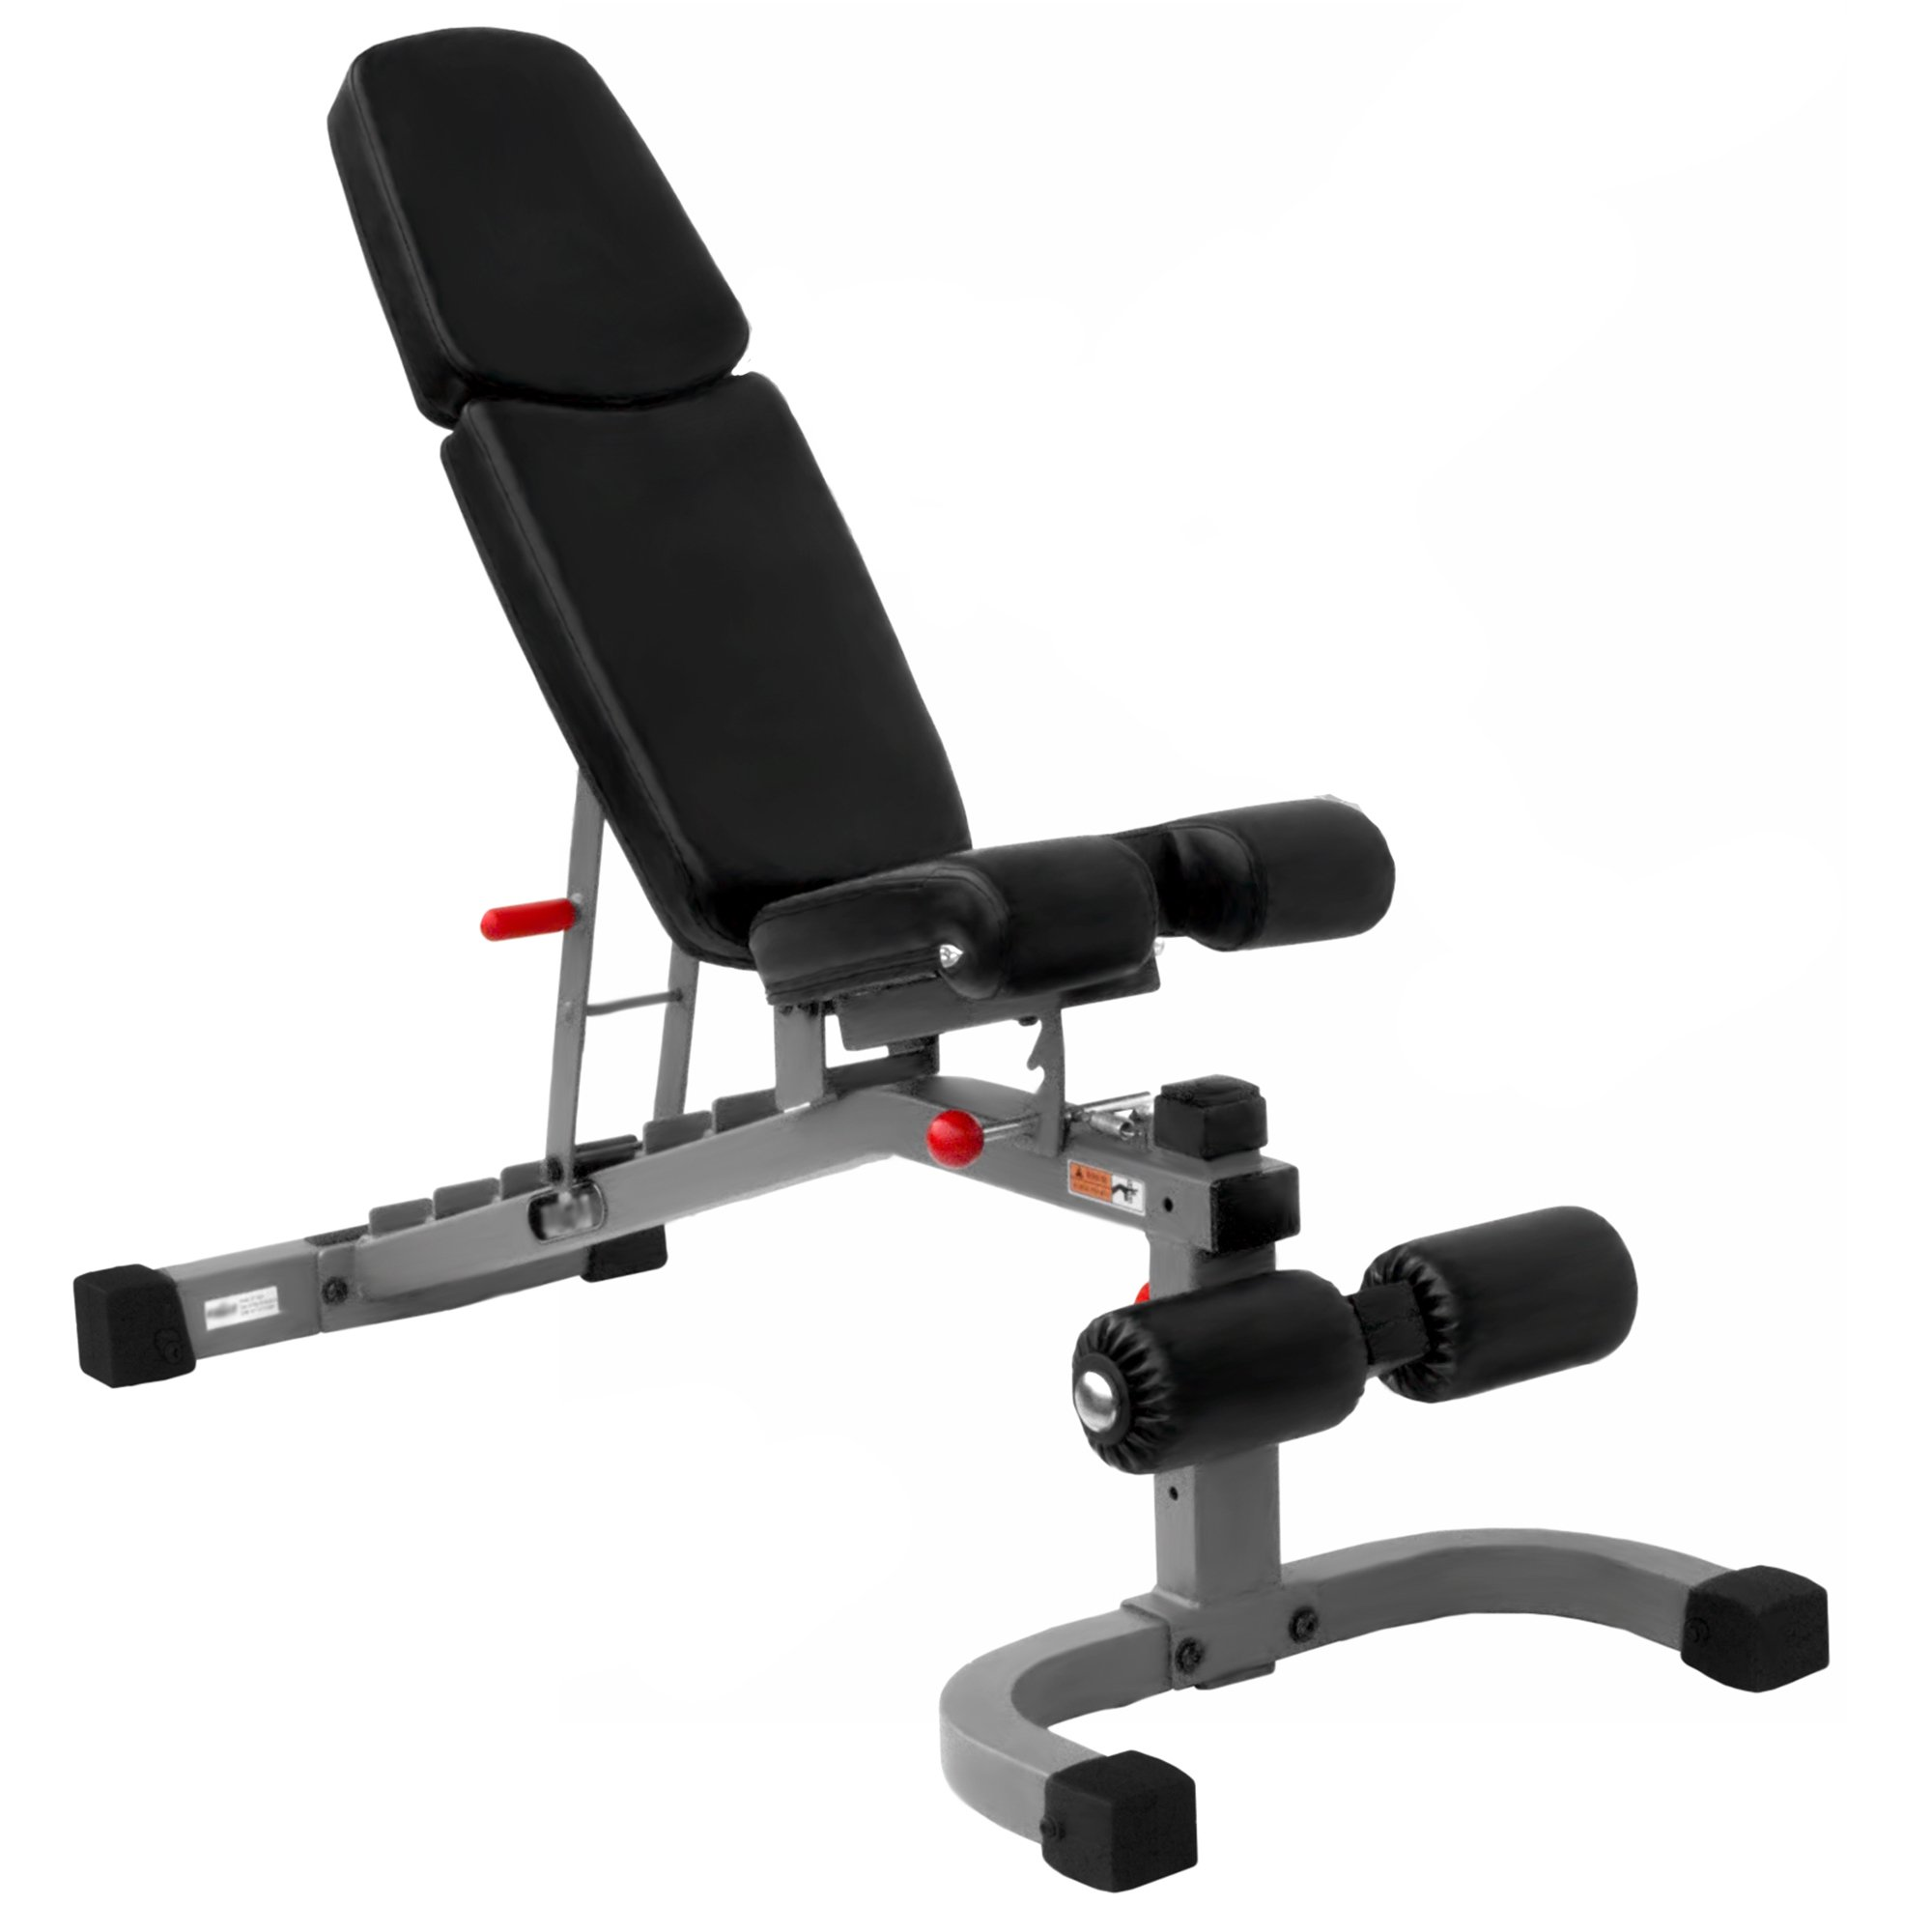 weight pureformance com walmart fuel ip incline bench fid